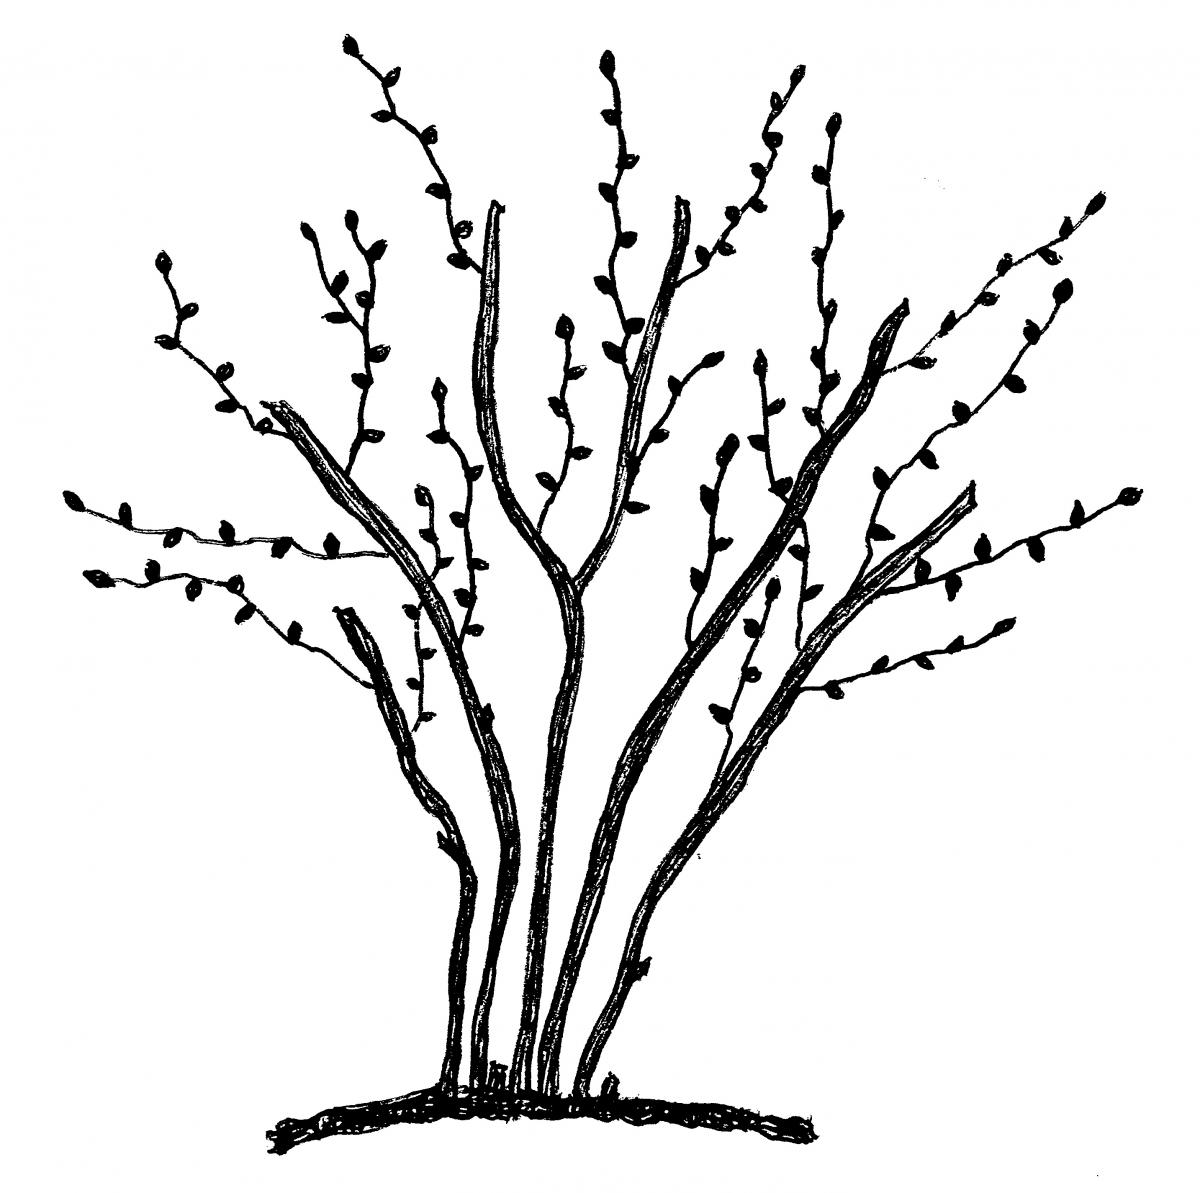 Pruning blueberry in the. Bushes clipart drawing